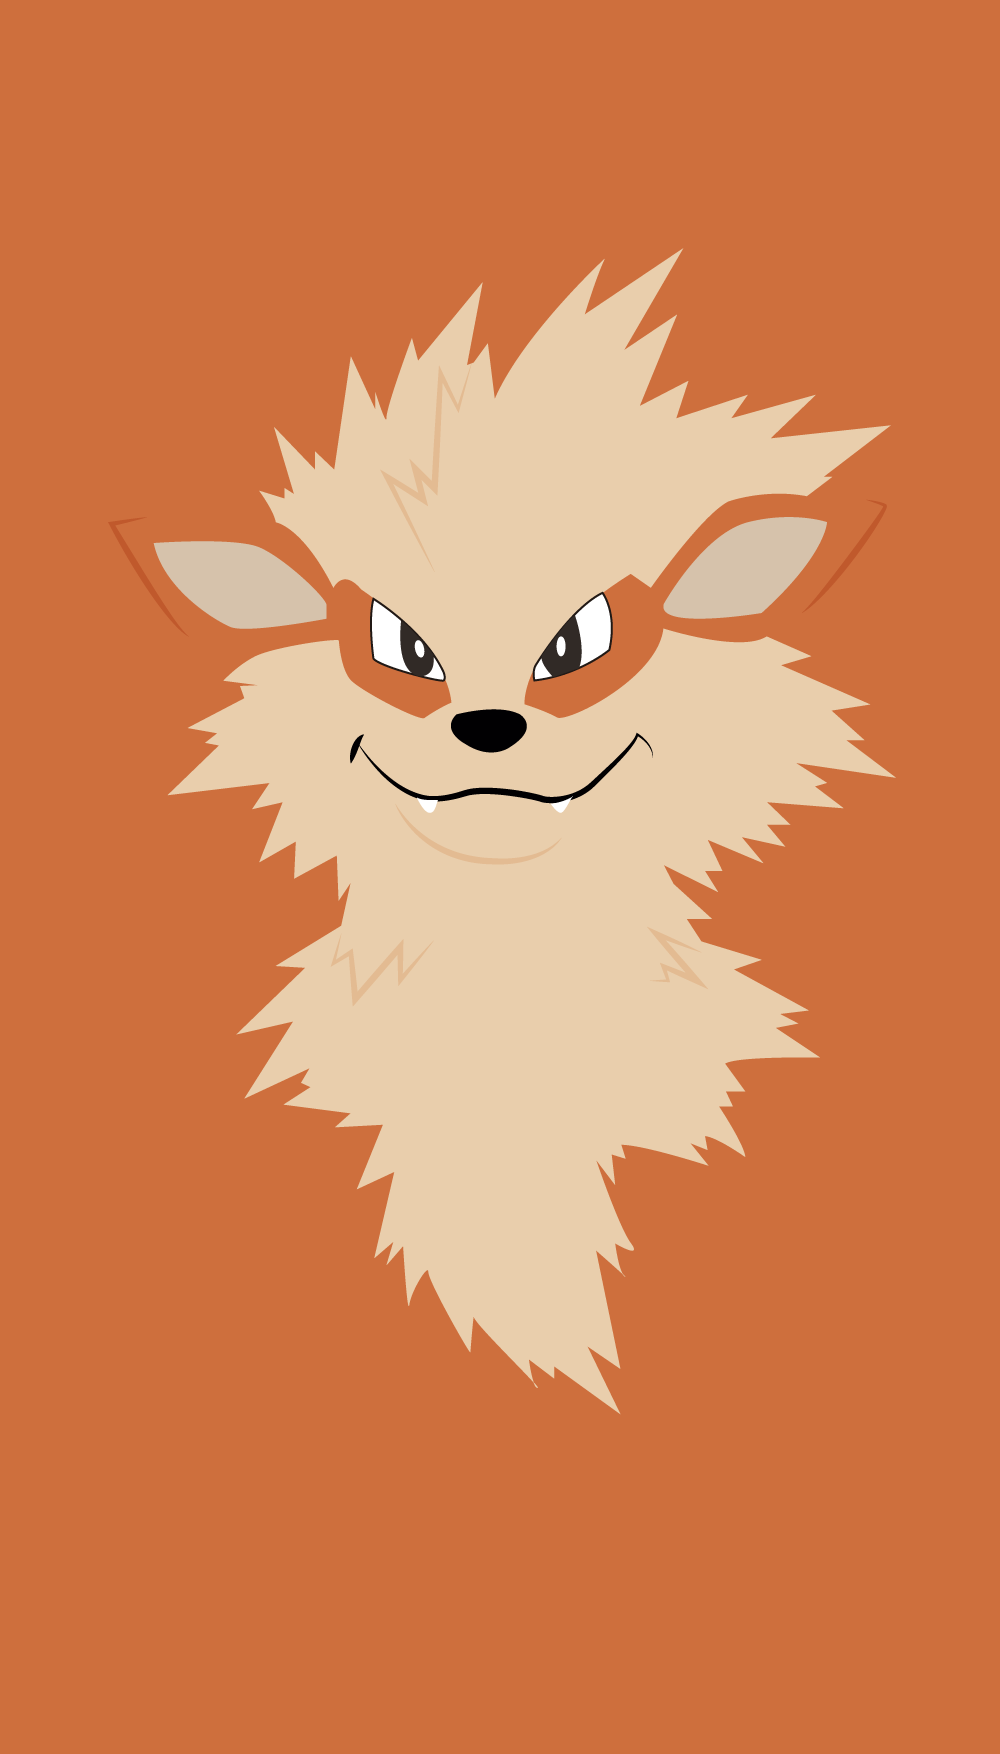 Pokemon Wallpaper Arcanine | Wallpapers | Pinterest | Pokémon …